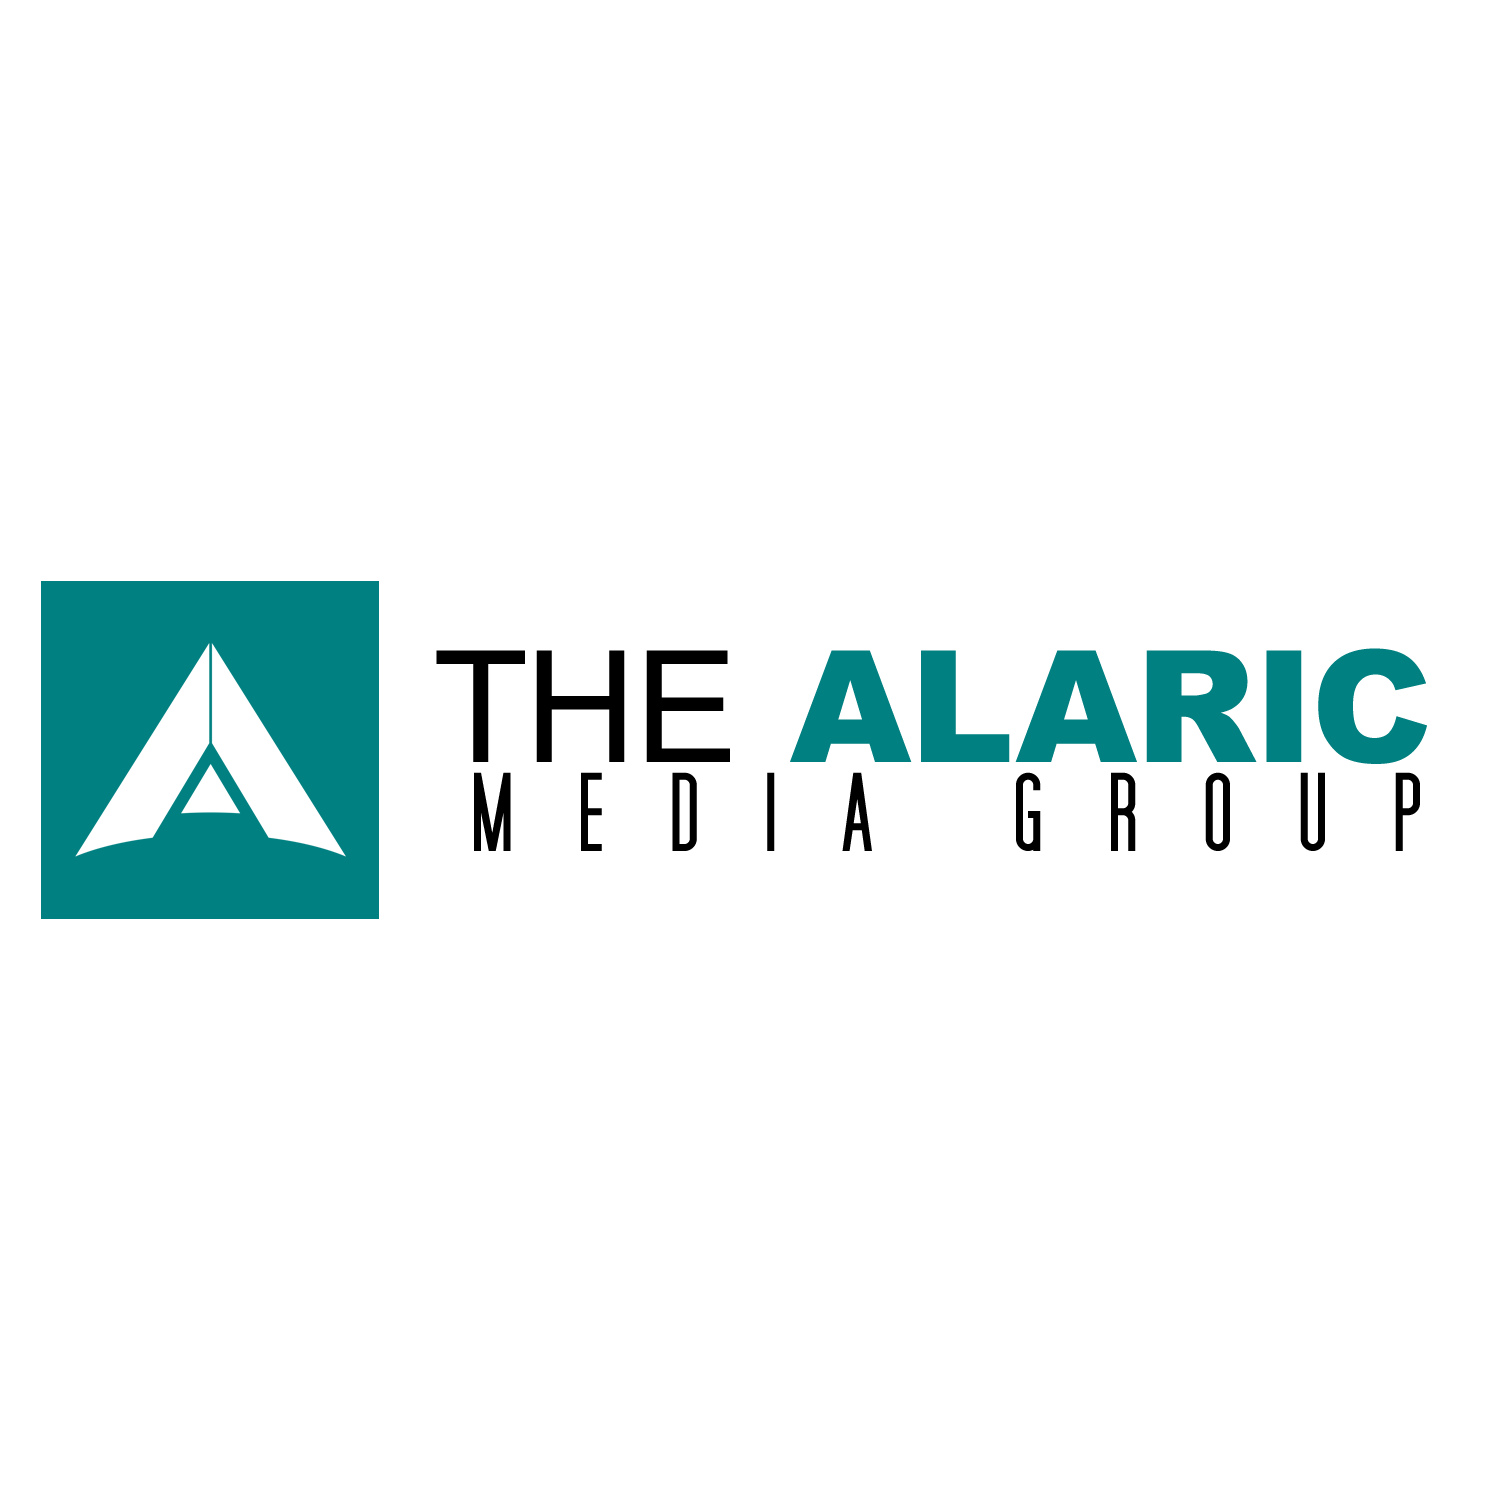 The Alaric Media Group image